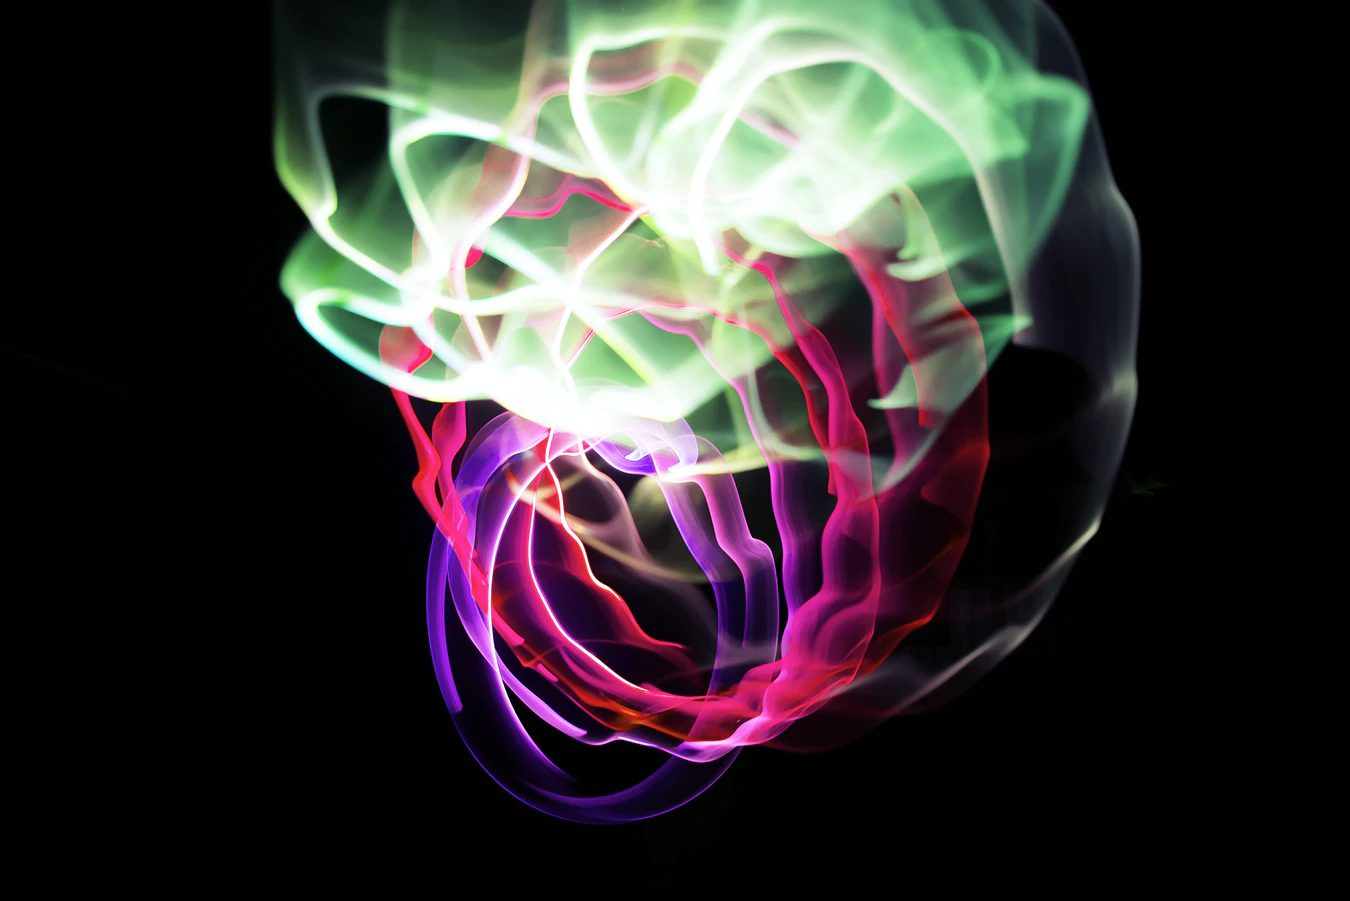 crazy-looking image of color swirls